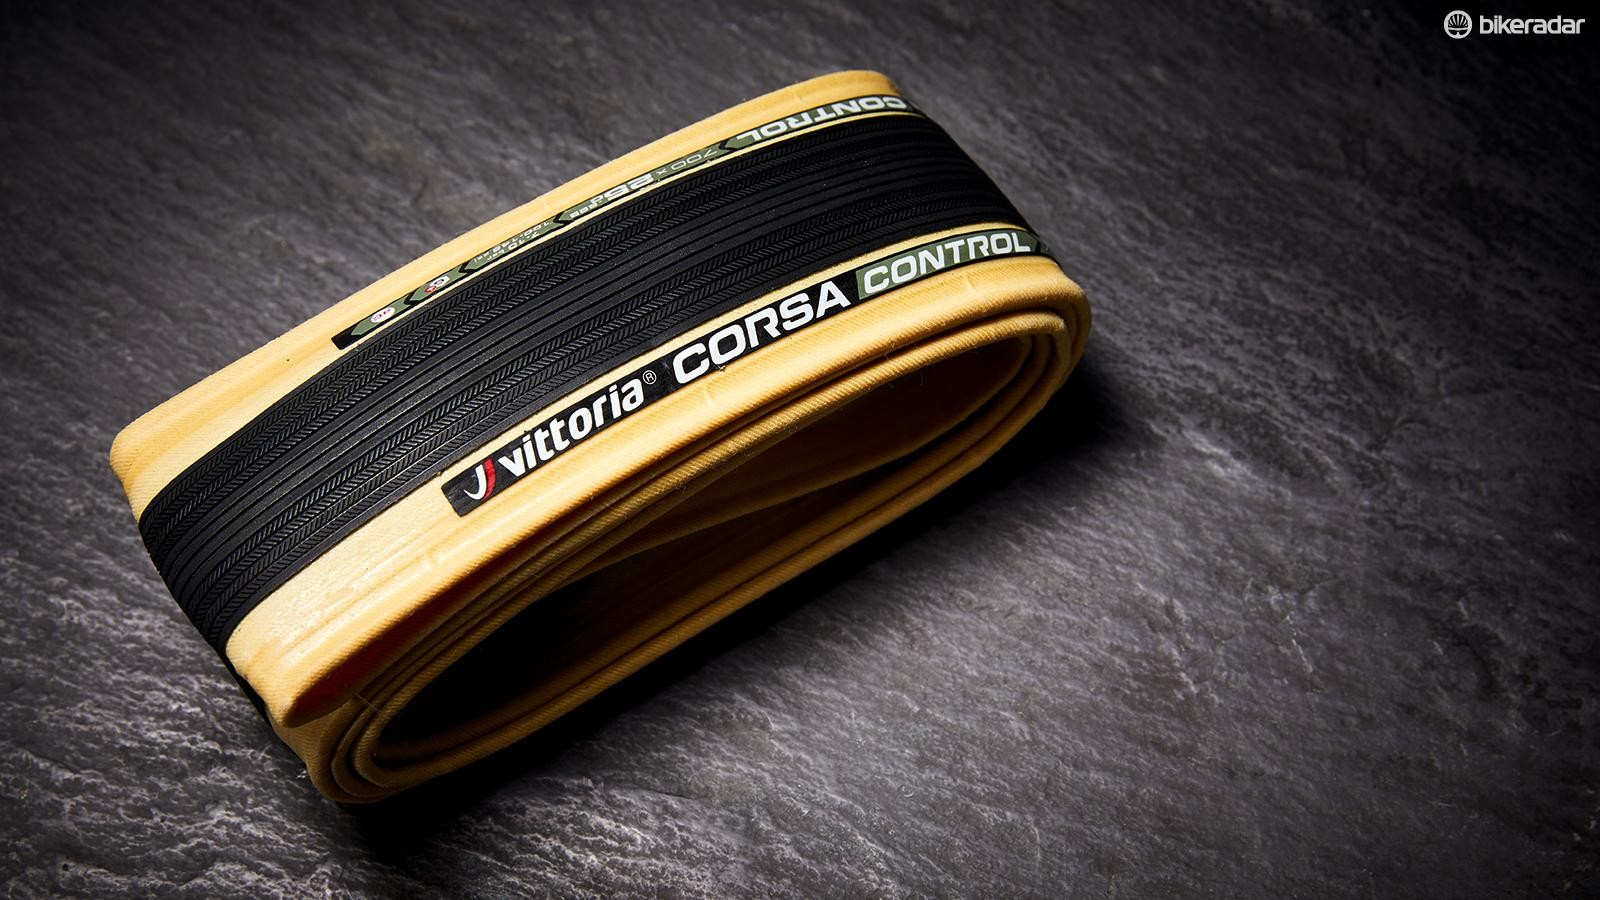 Vittoria Corsa Control G+ Isotech tyre